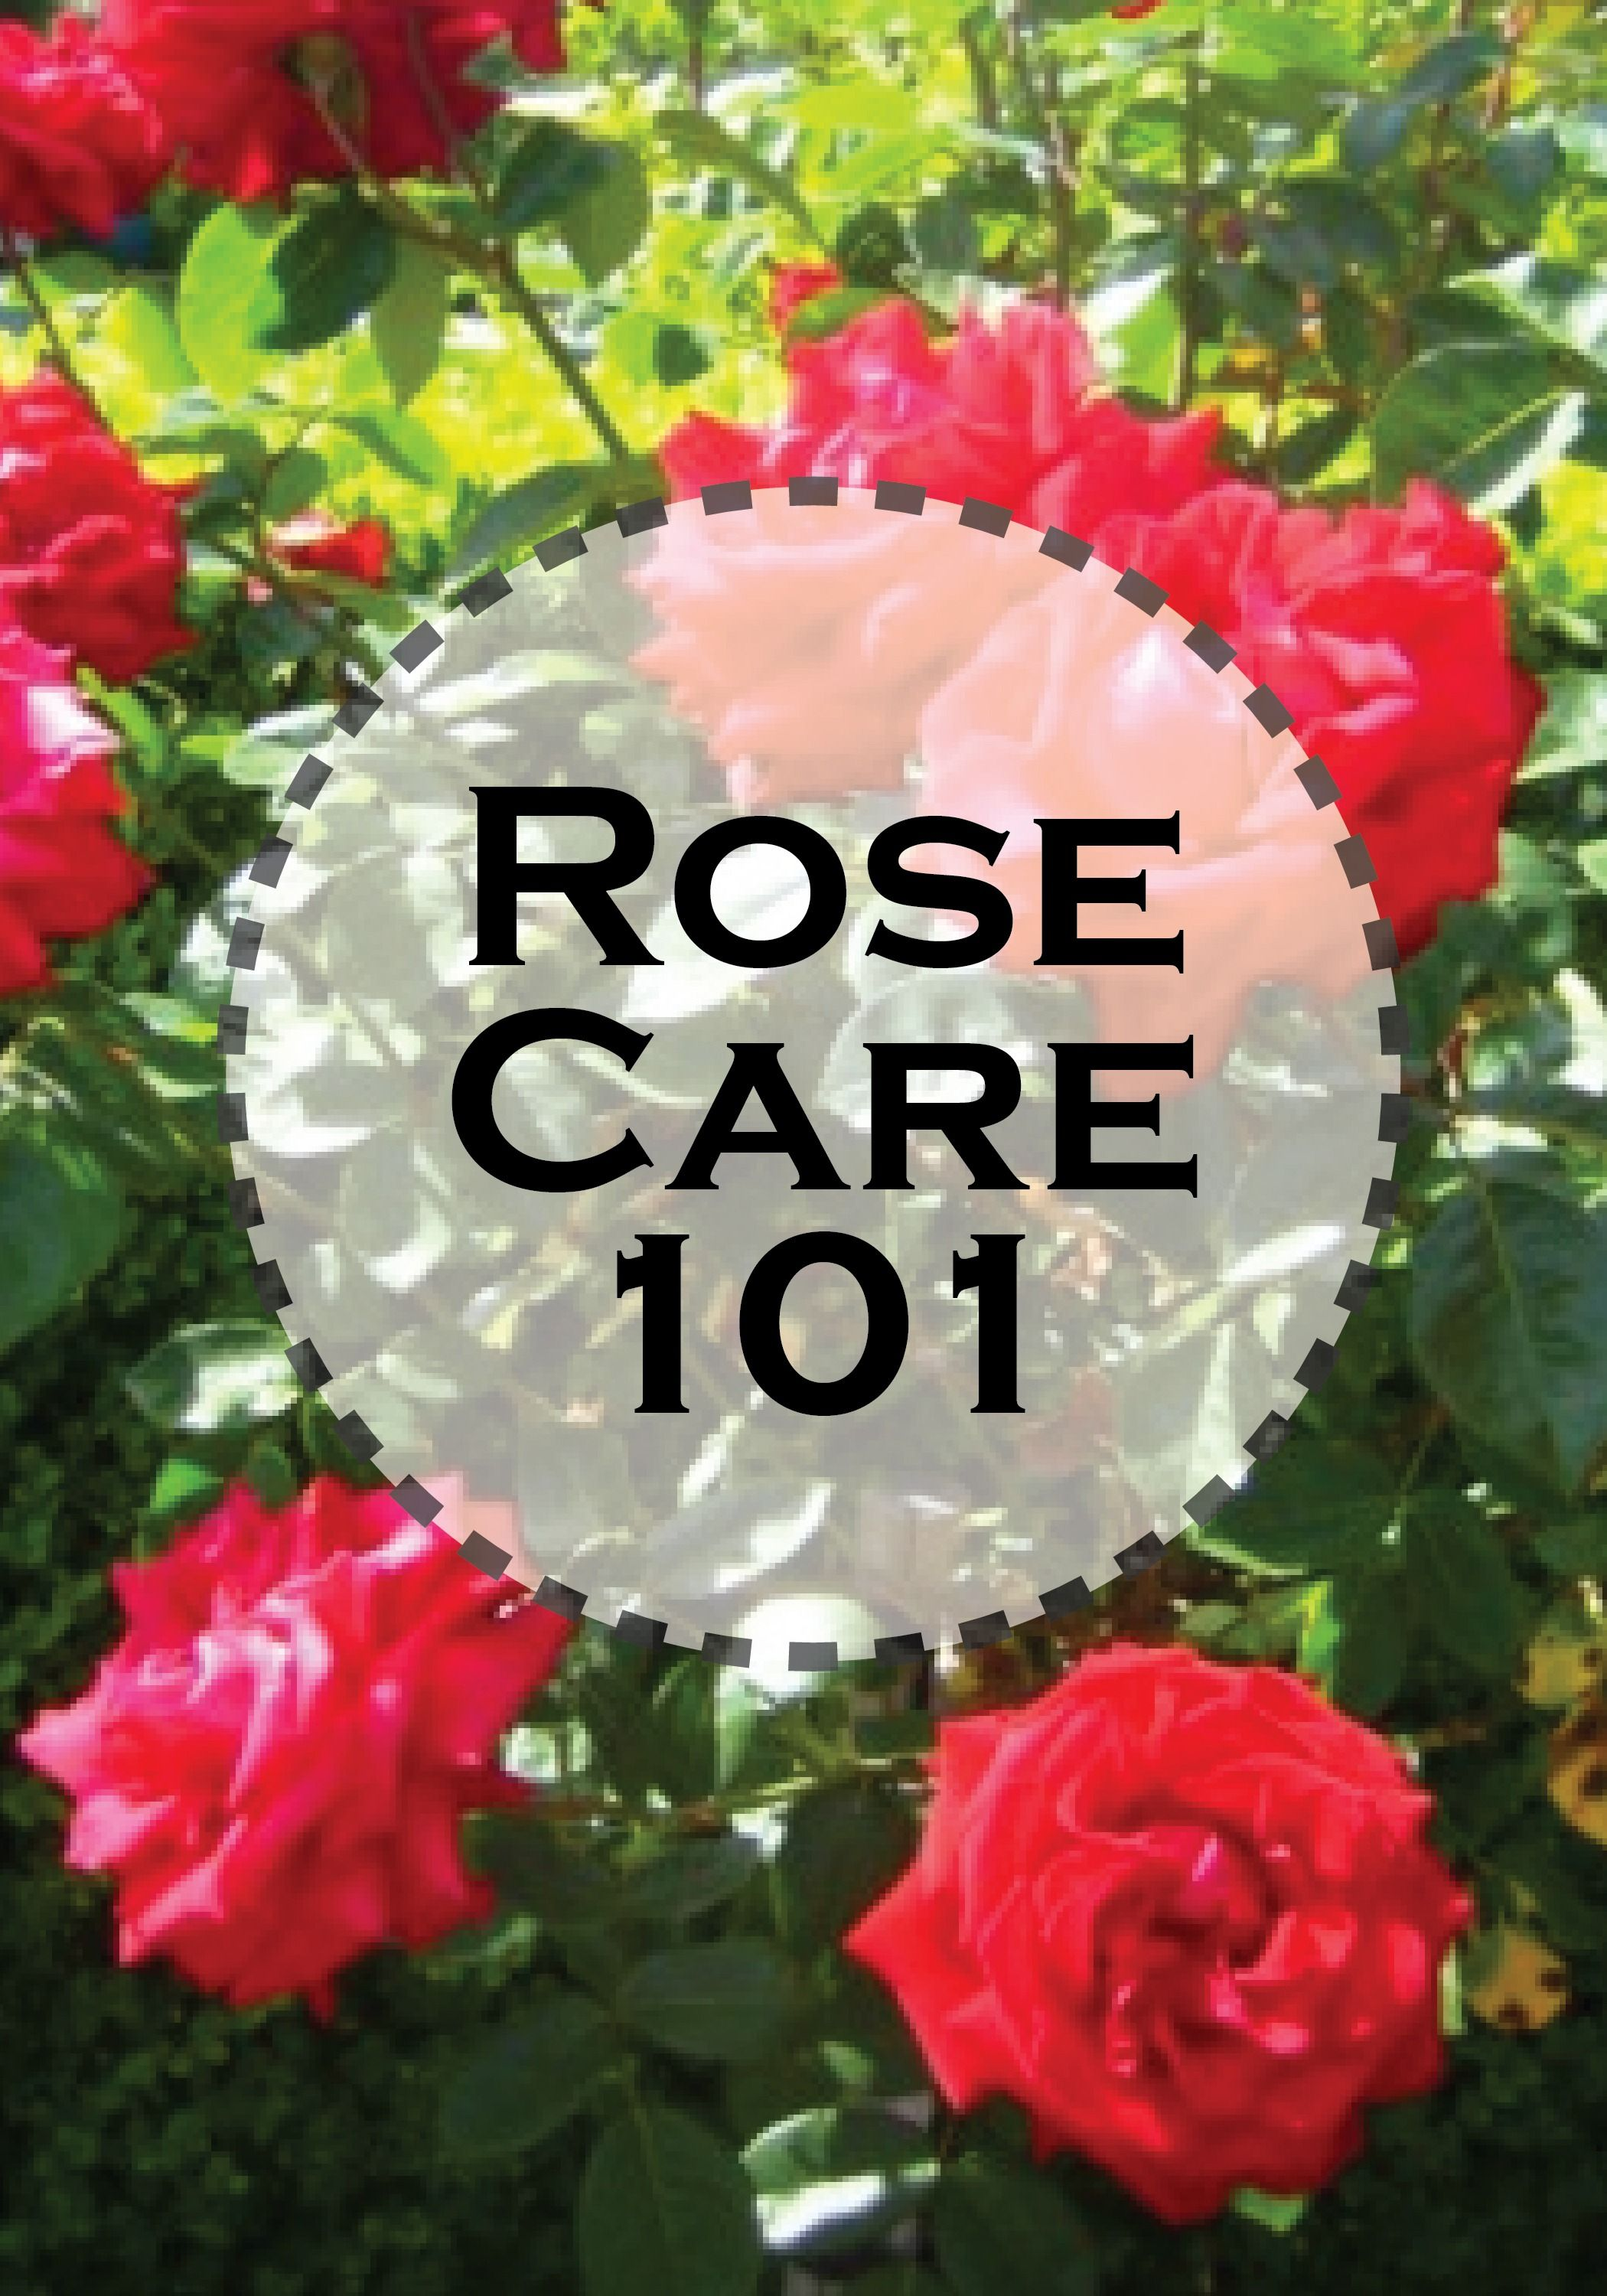 Basic Rose Care For Beginners is part of Rose care, Rose garden design, Rose bush care, Planting roses, Roses garden care, Growing roses - One of the first flowers I fell in love with were roses  They come in so many colors from bright white to soft pink to fiery red  Roses have one of the most beautiful scents in the flower world  They also come as single open petals or ones that have over a hundred petals that   Read More »